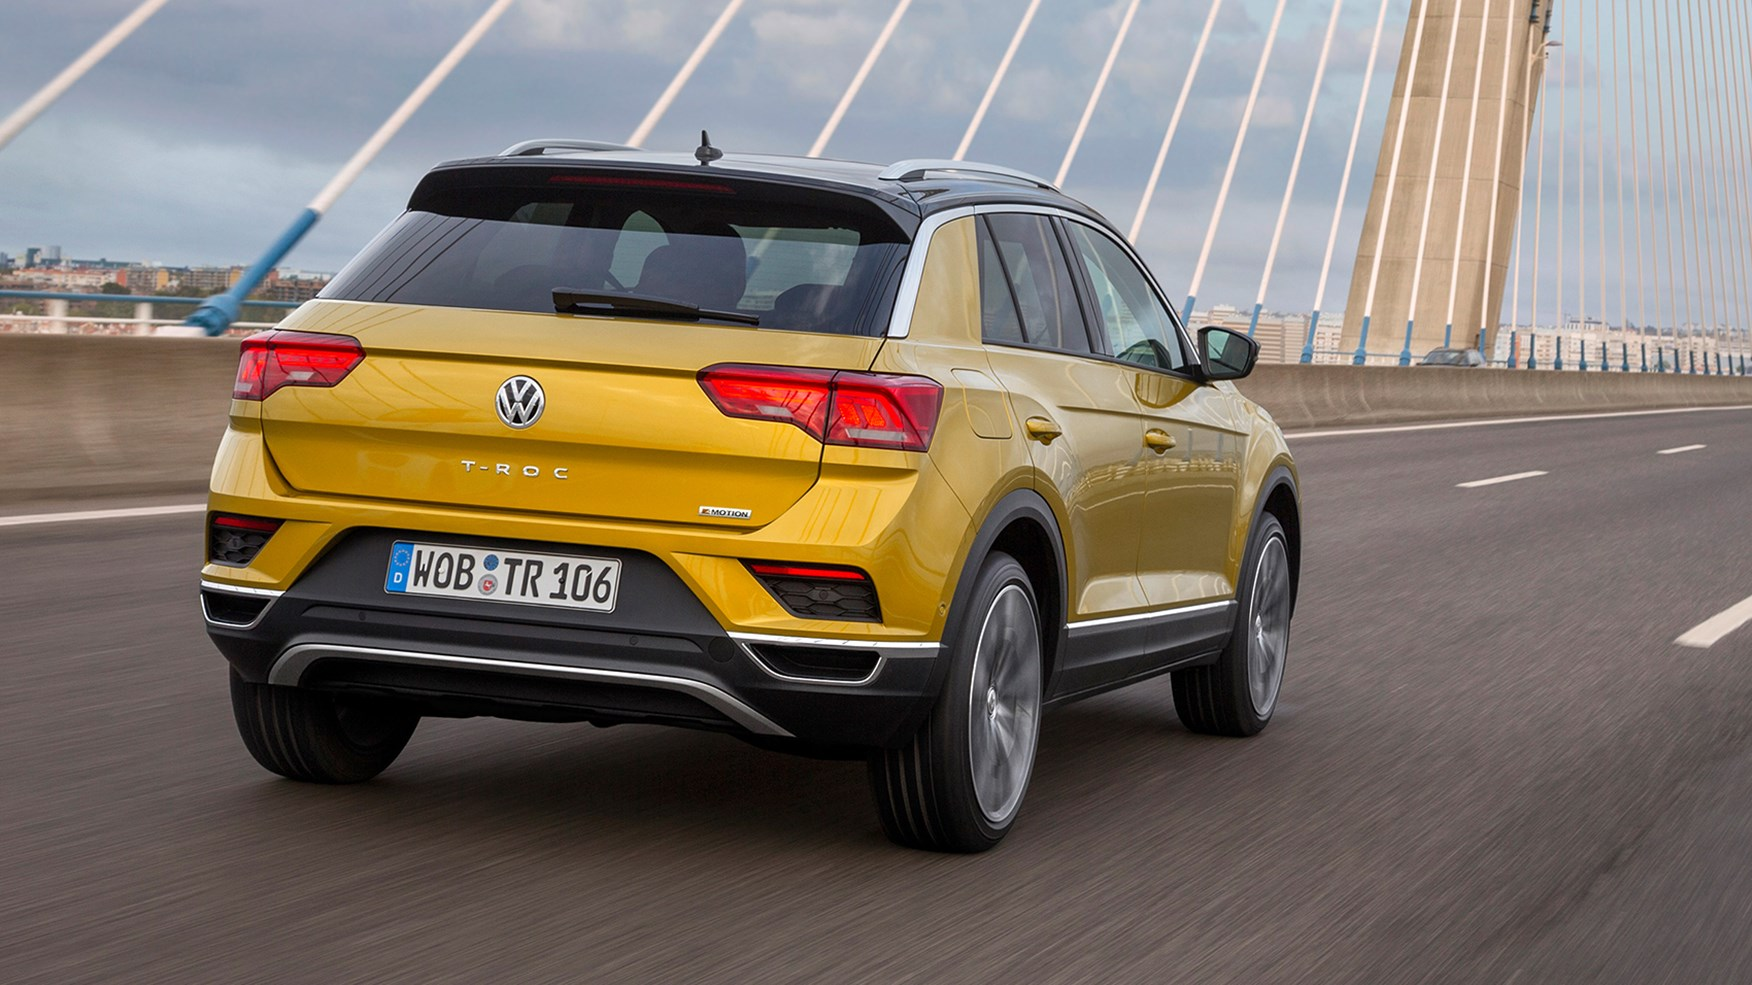 Volkswagen T Roc >> VW T-Roc SUV (2017) review | CAR Magazine